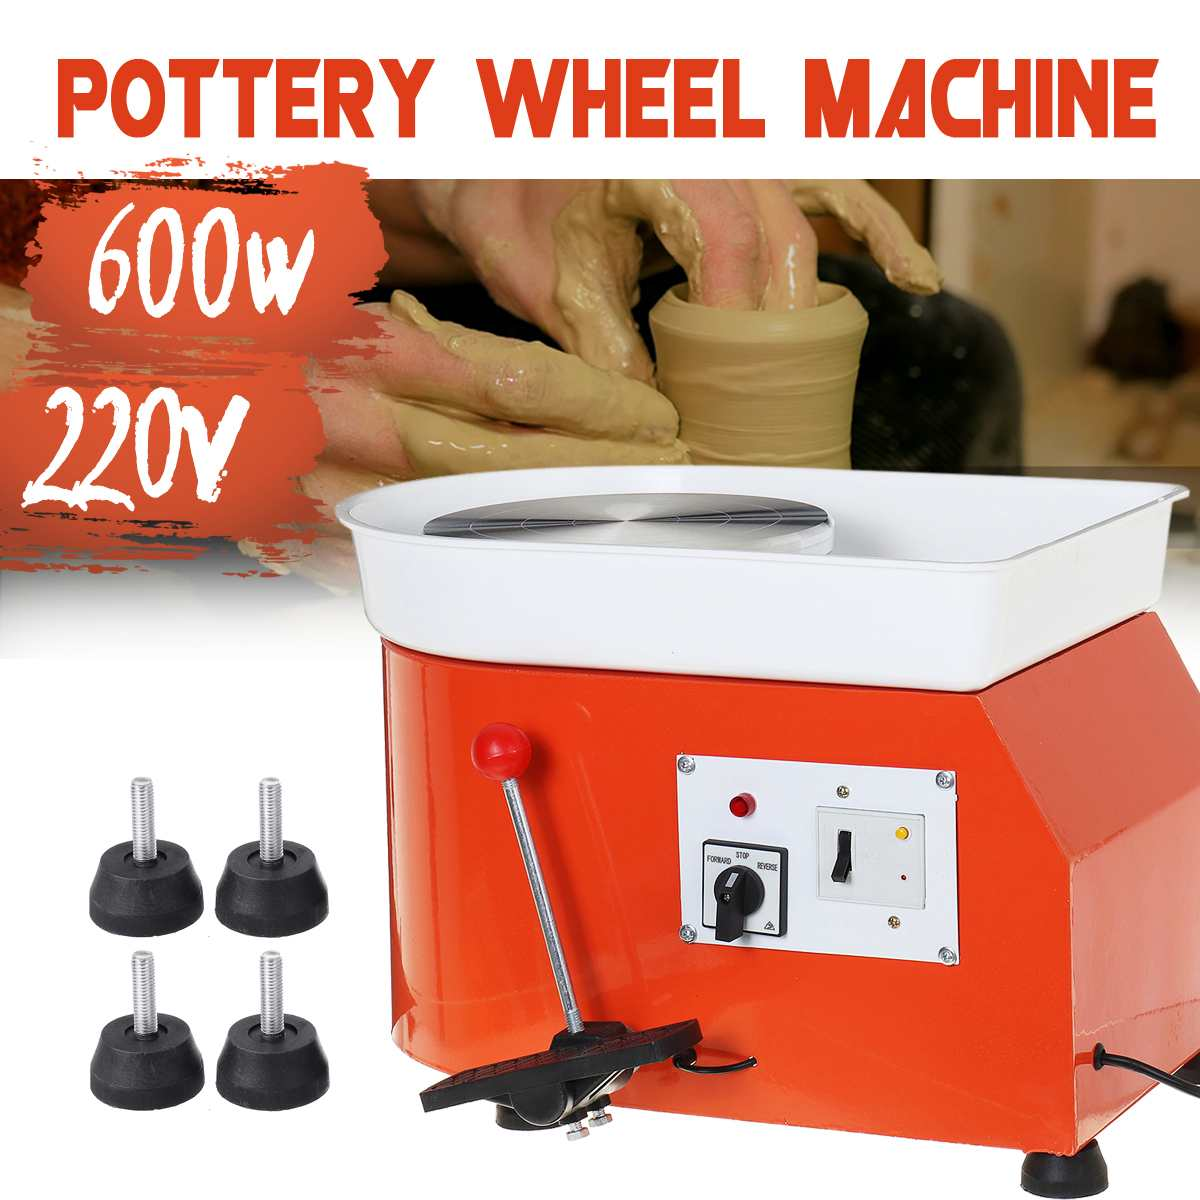 Meigar 220V 600W Turning Electric Pottery Wheel Machine AU DIY Clay Pottery Tool Kit For Ceramic Work 25CM Dia.